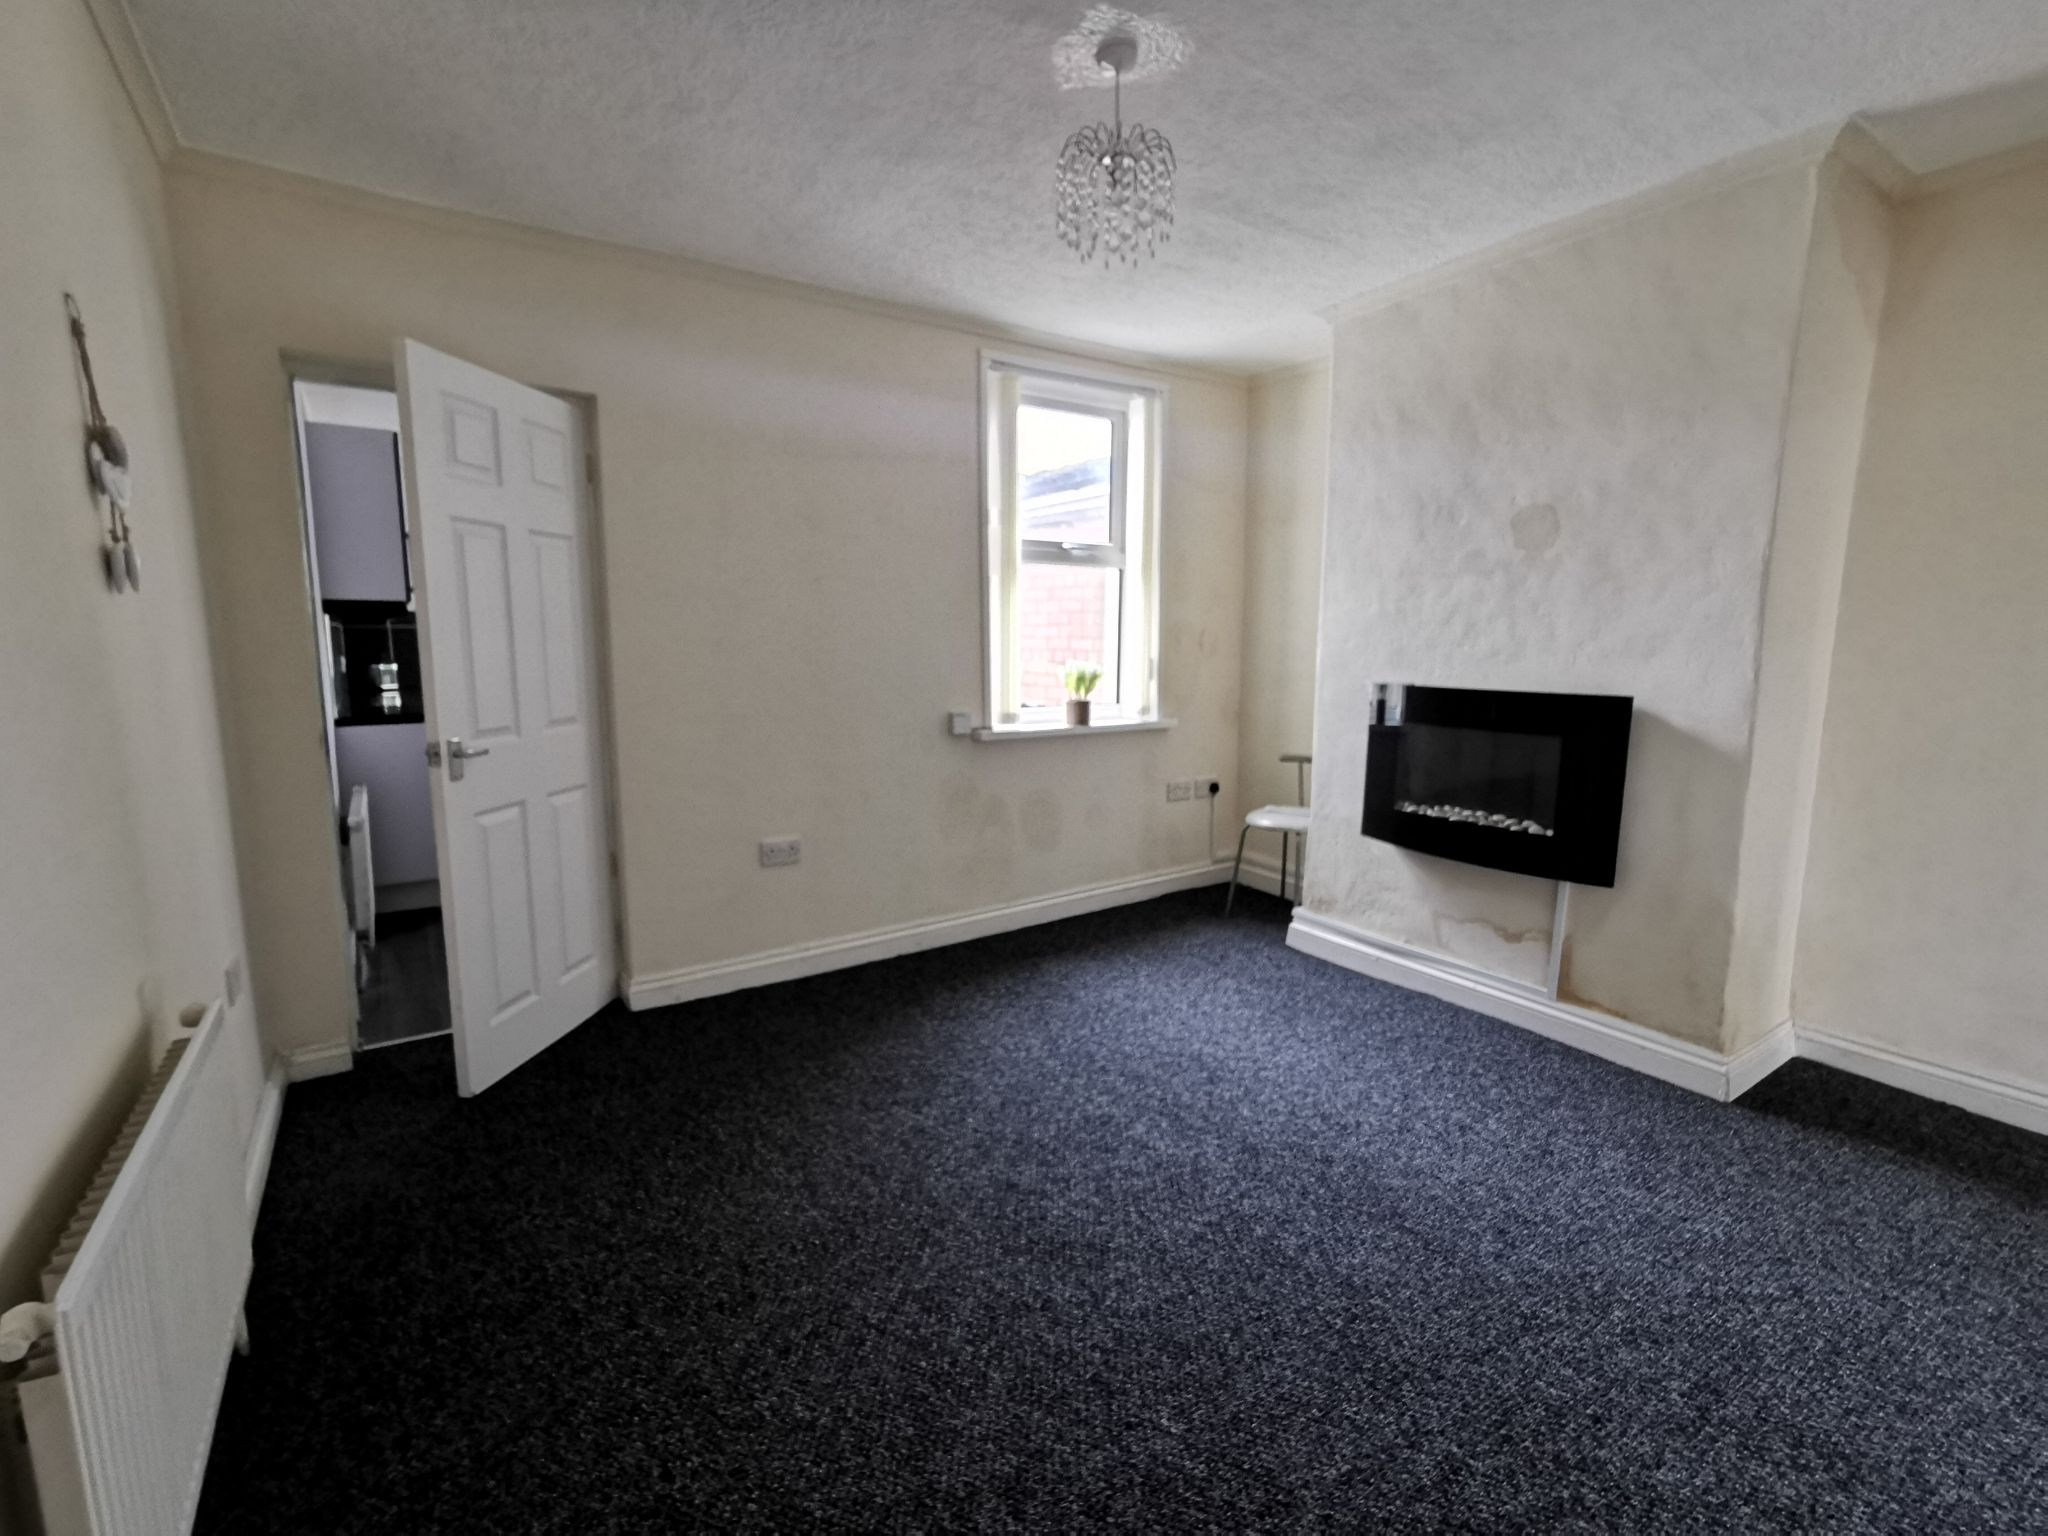 2 bedroom mid terraced house For Sale in Allerdale - Photograph 3.